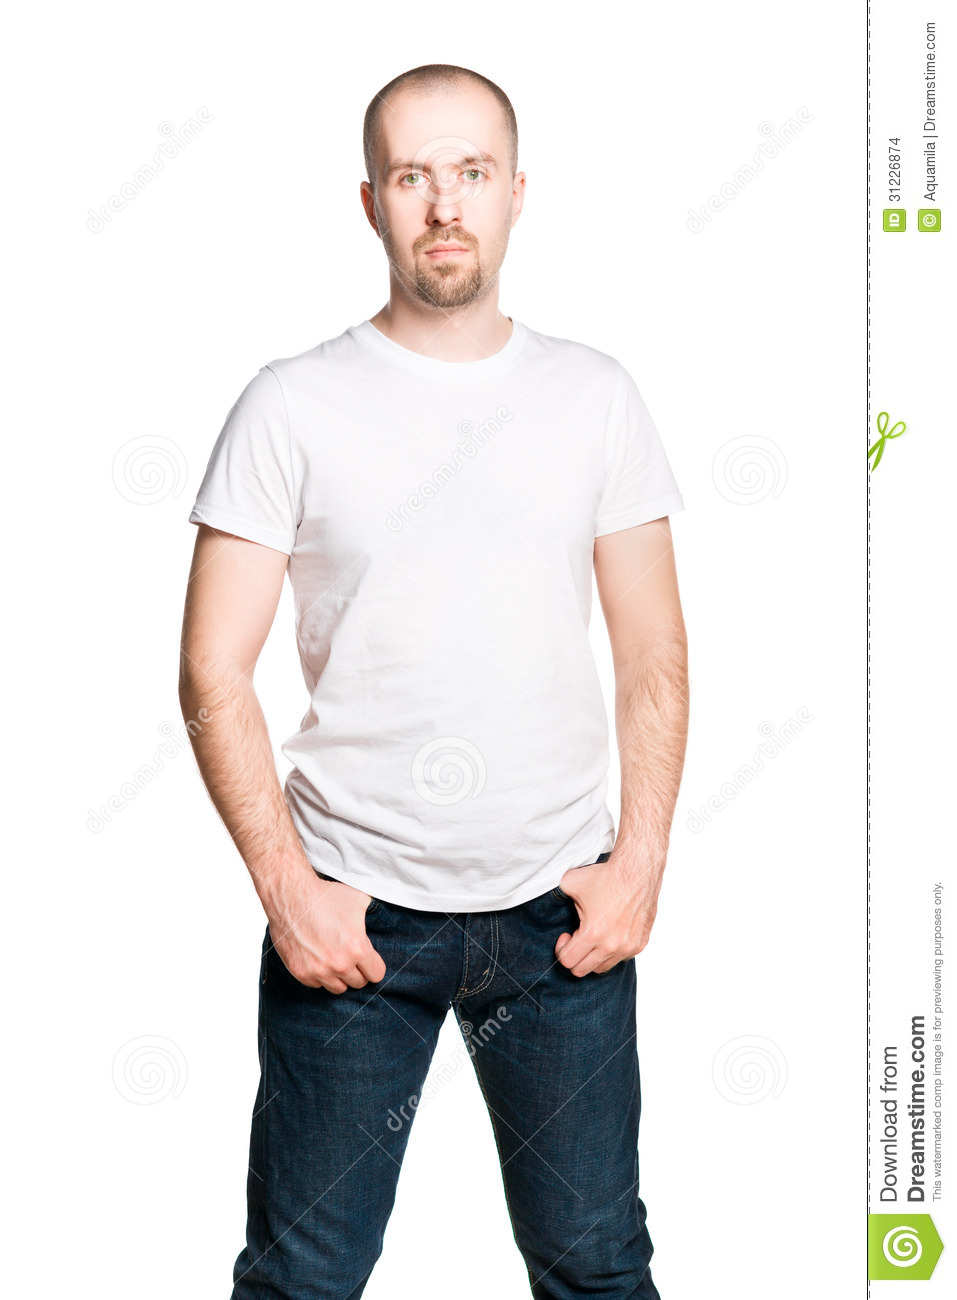 White t shirt and blue jeans - Attractive Confident Isolated Jeans Man Portrait Shirt T White